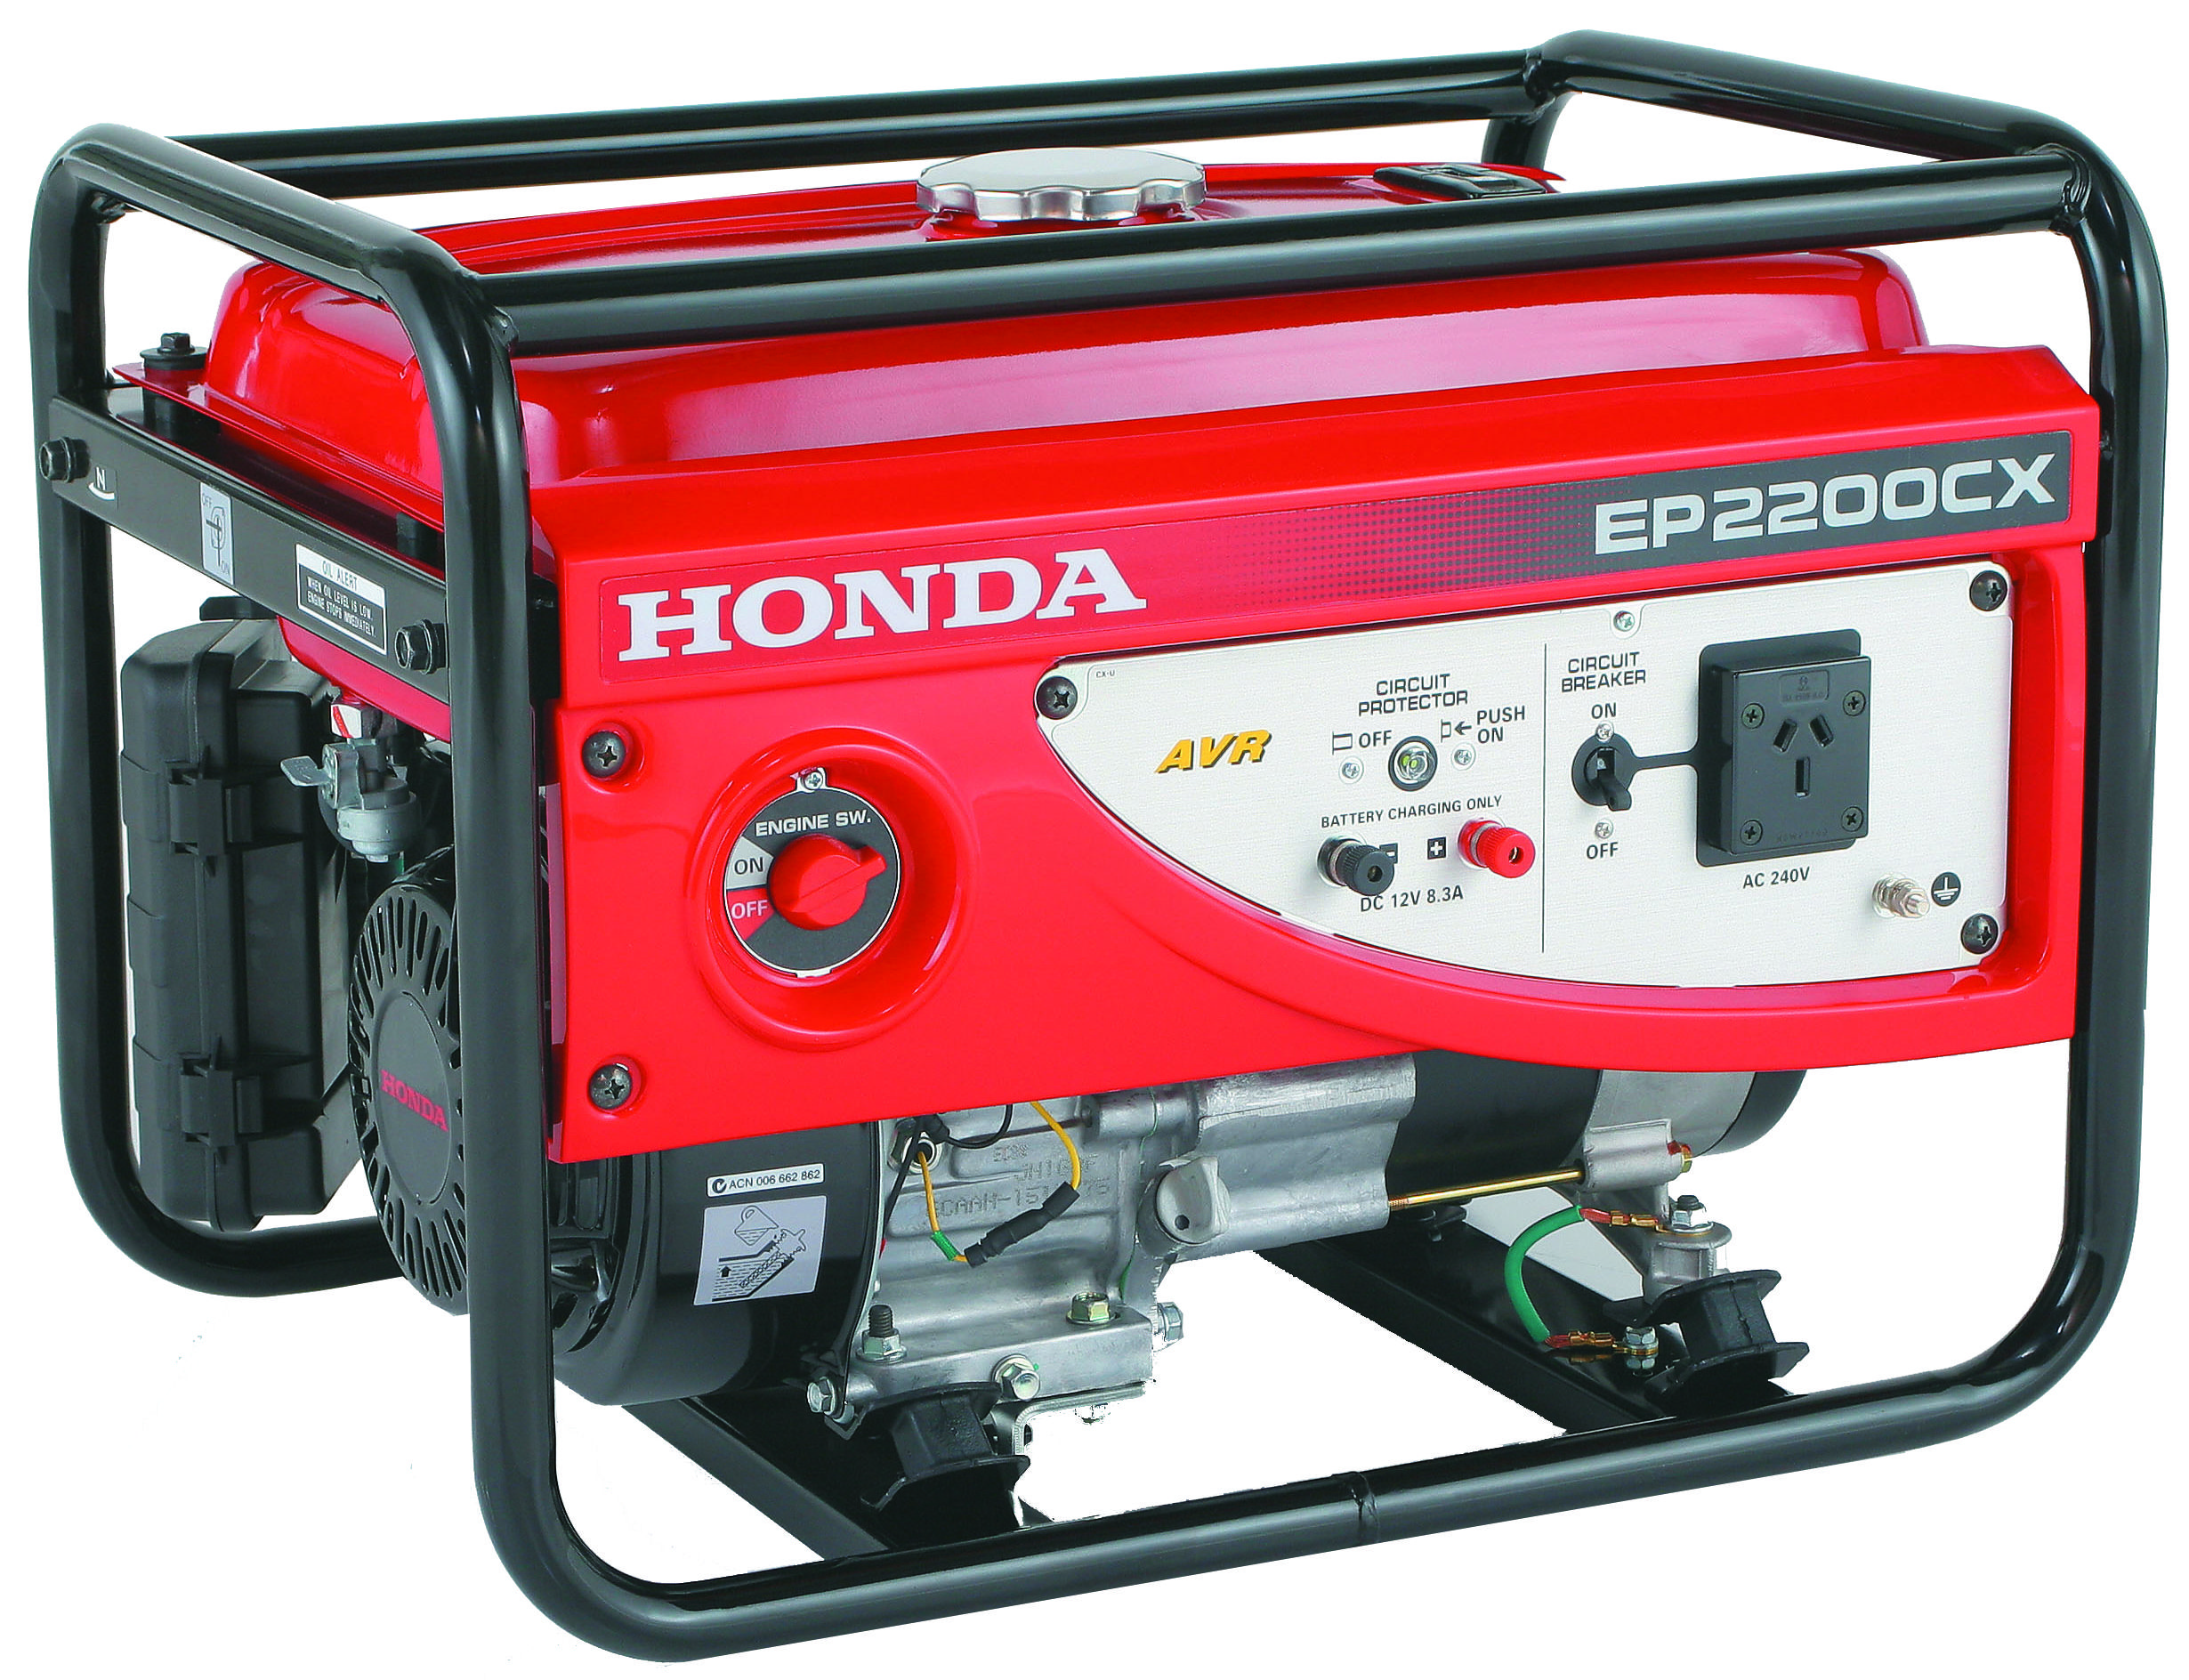 The Honda Ep2200cx 2 2kva Generator Extremely Useful For A Farmer Pumping Drinking Water For His Sheep Drinking Water Drinking Honda